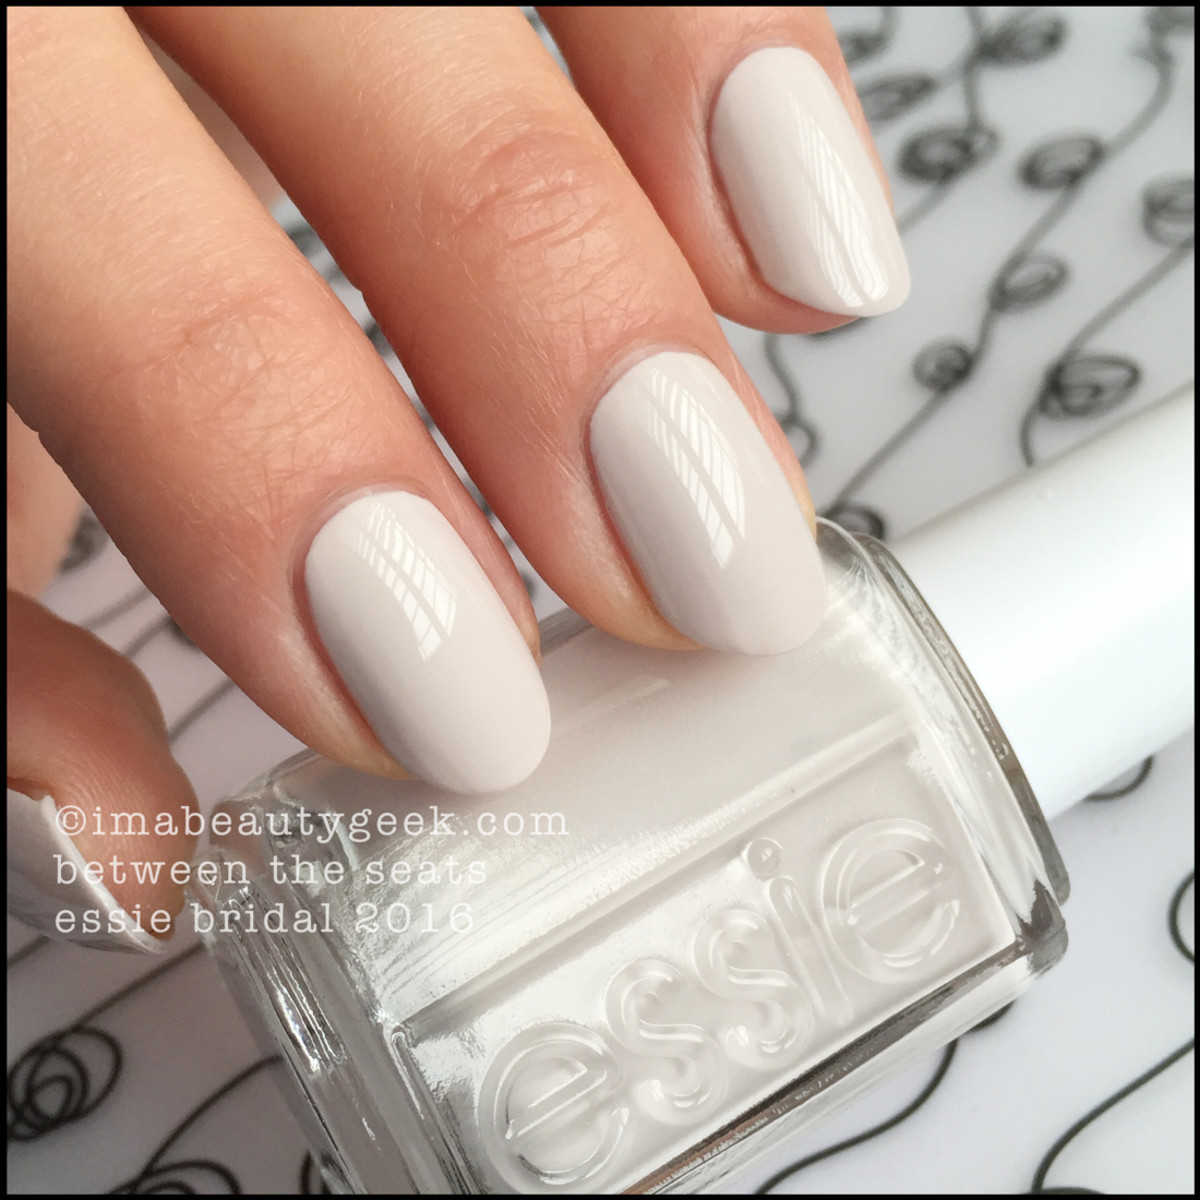 Essie Between the Seats_Essie Bridal 2016 Swatches Review